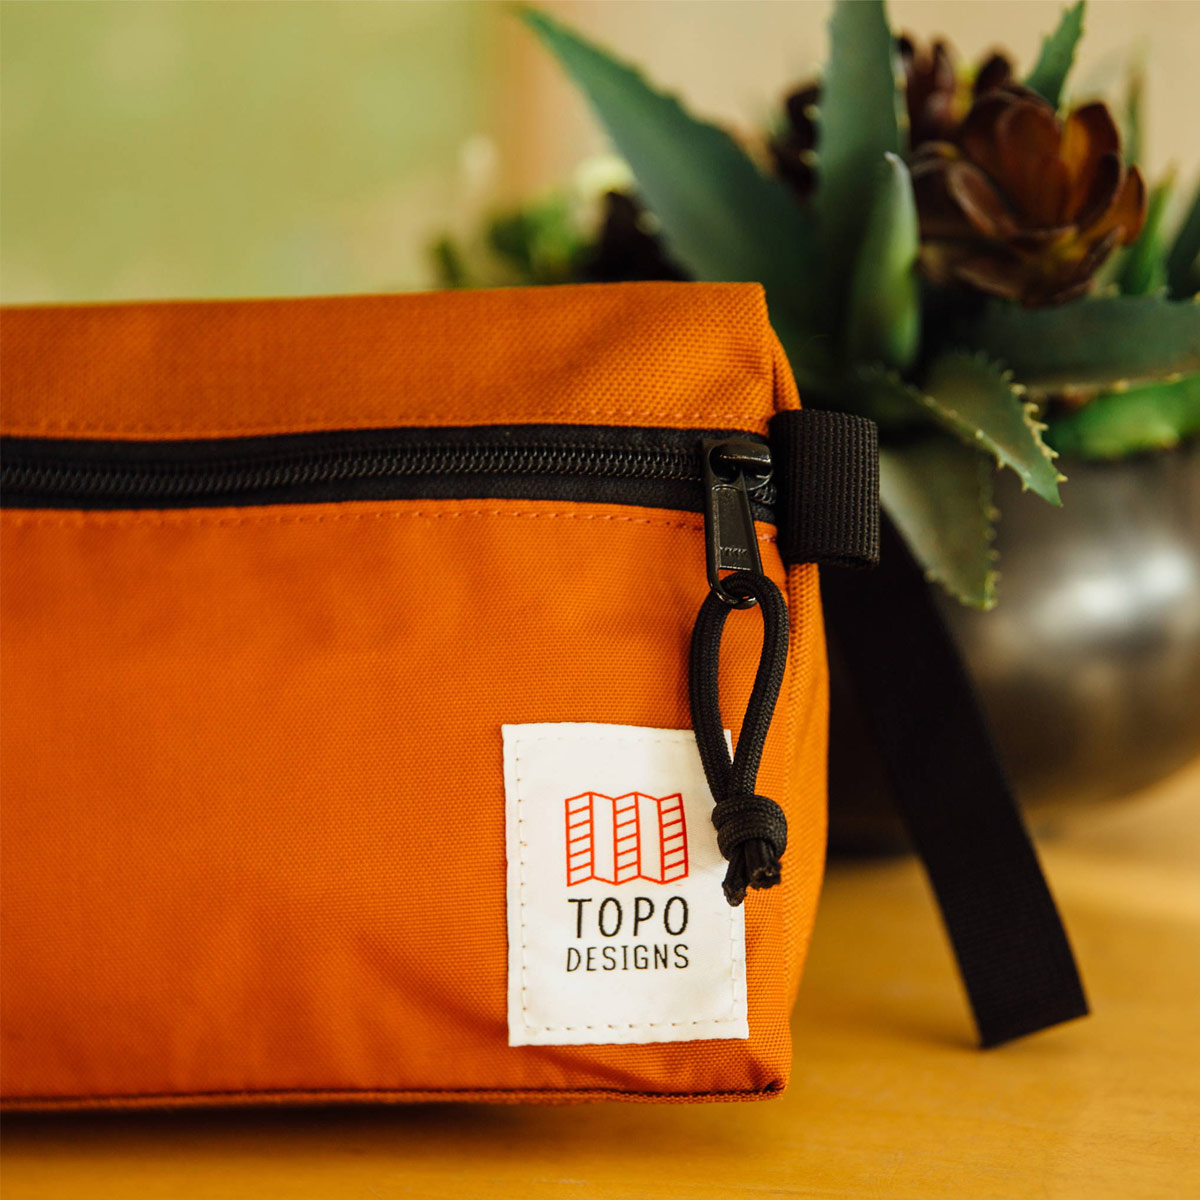 Topo Designs Dopp Kit Clay, water-resistant, travel light, accessory bag